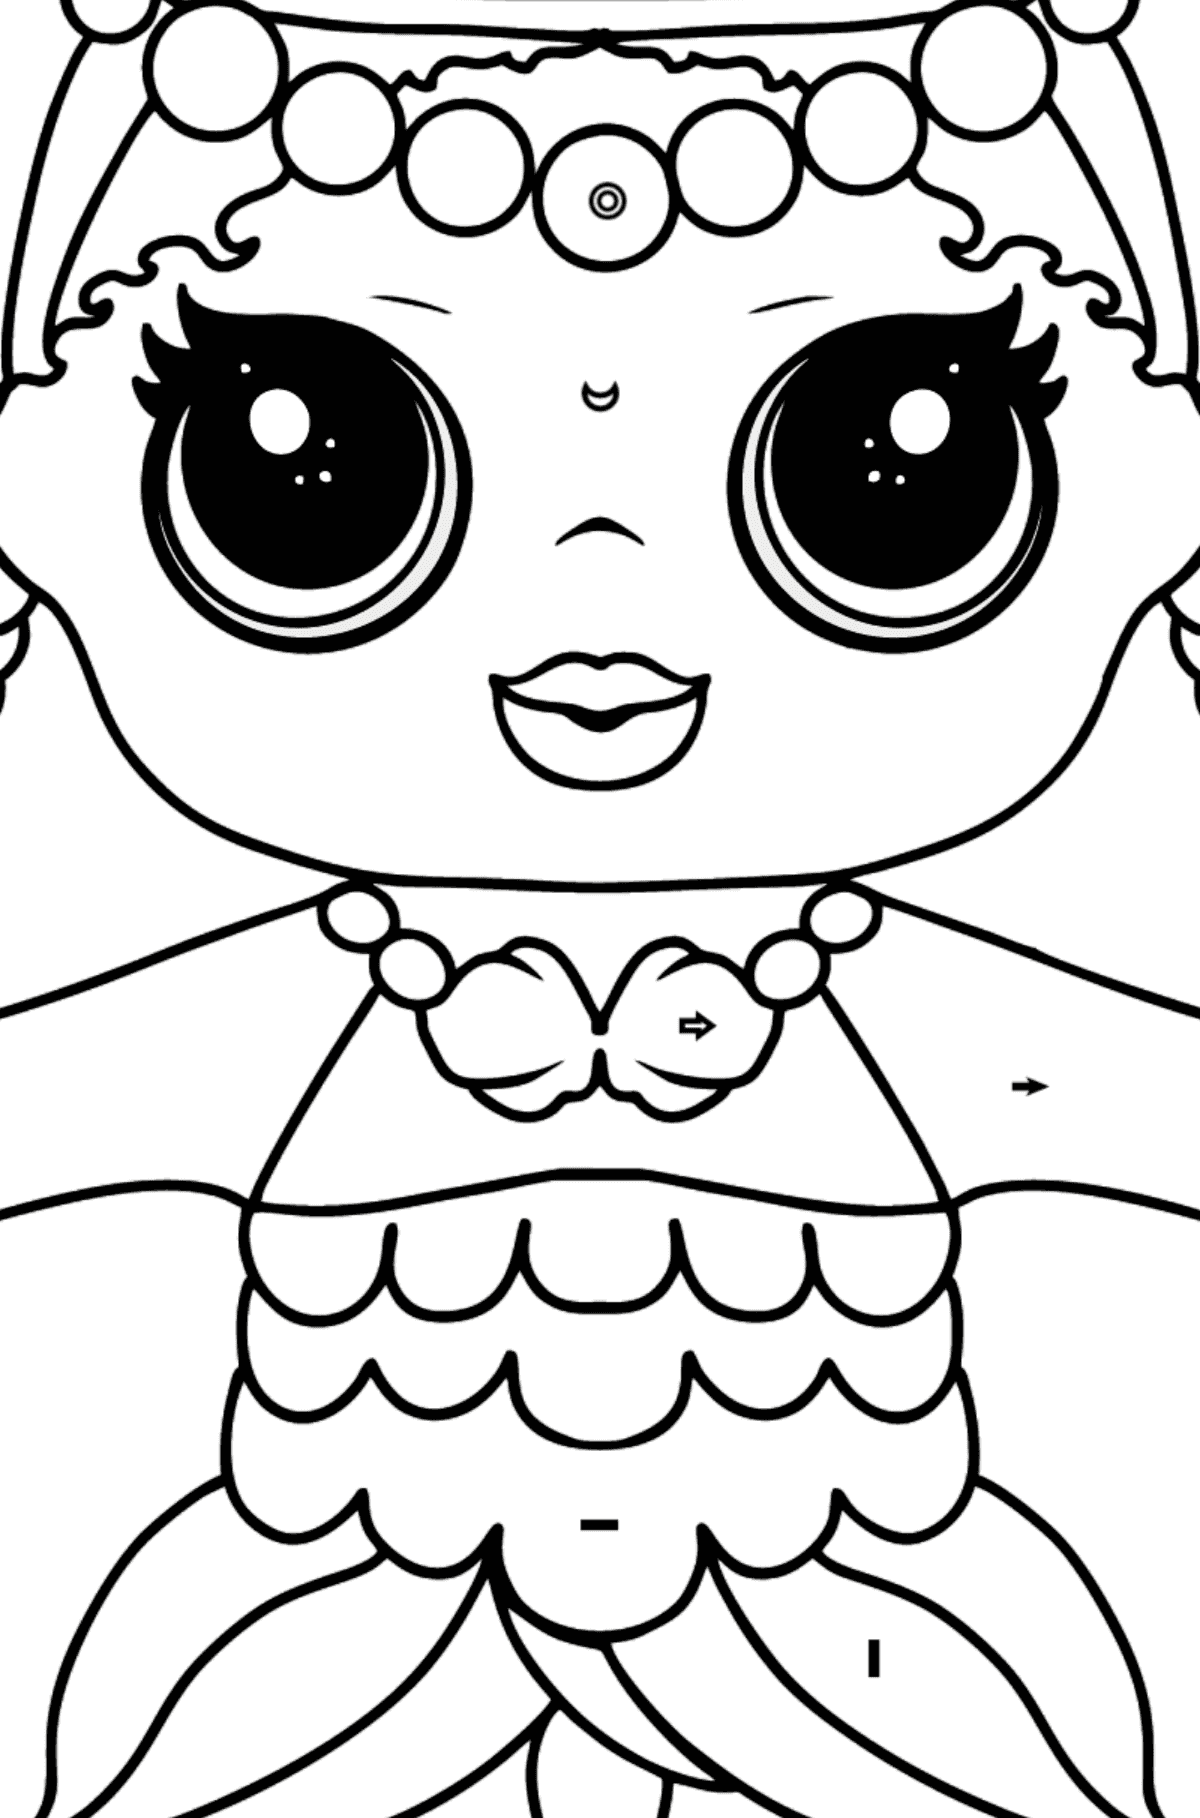 L.O.L. Surprise Doll Merbaby - Coloring by Symbols and Geometric Shapes for Kids